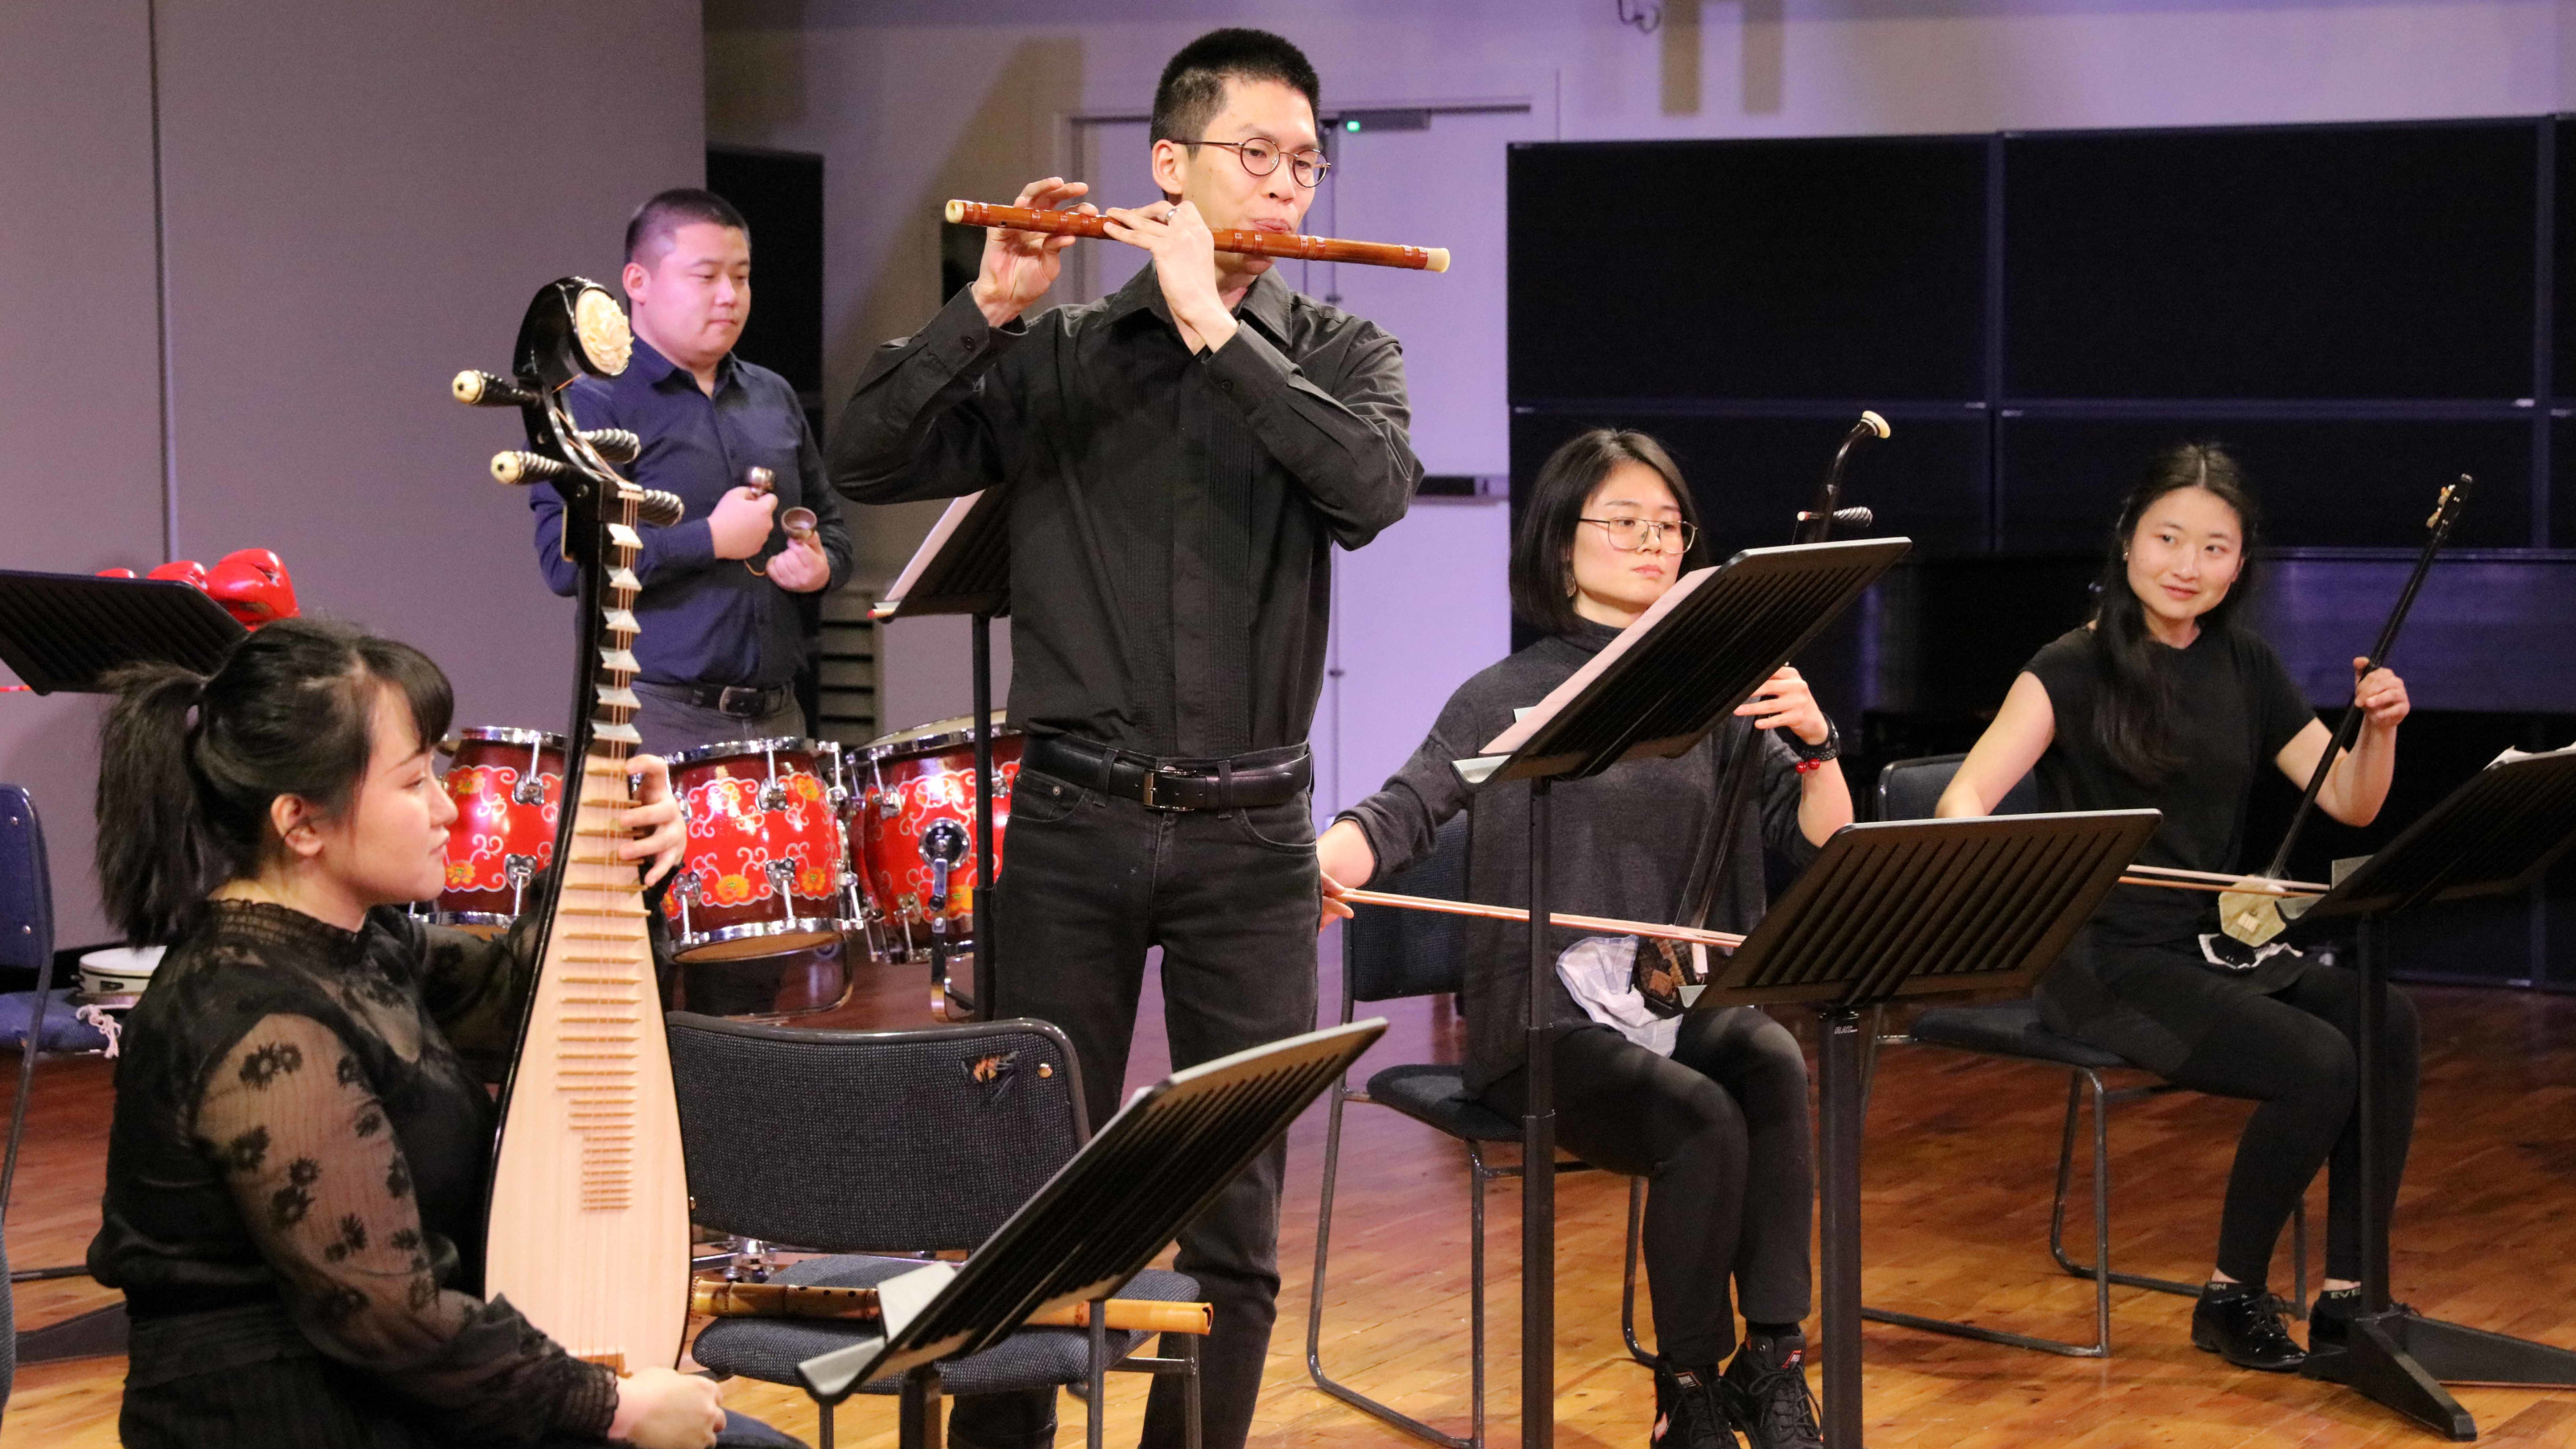 An ensemble of five NZ School of Music students play classical Chinese instruments